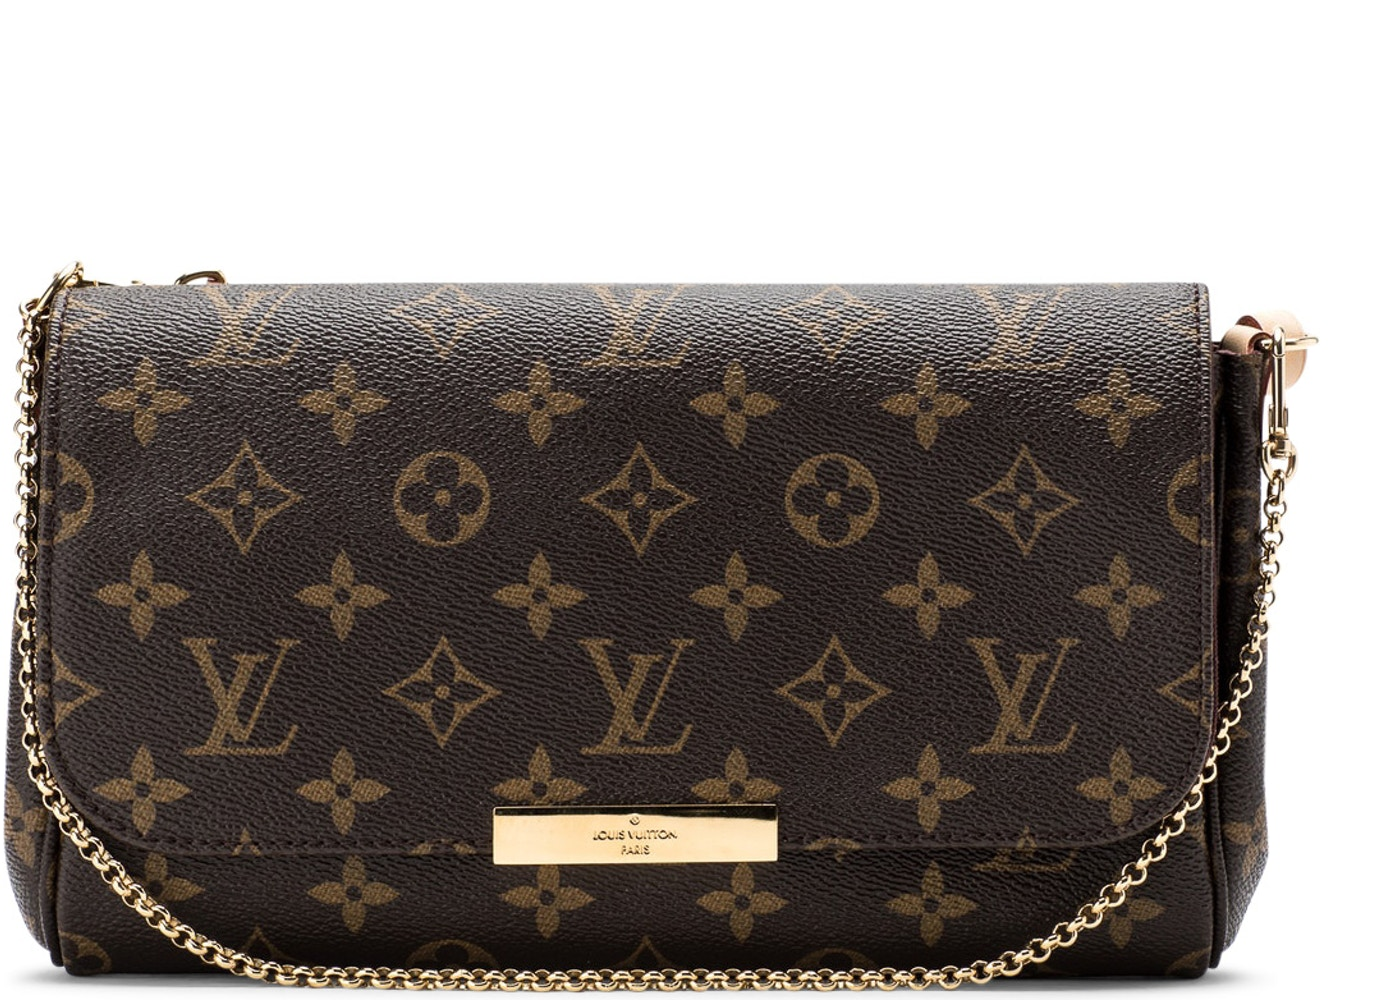 195f3fd101f1 Louis Vuitton Favorite Monogram MM Brown. Monogram MM Brown